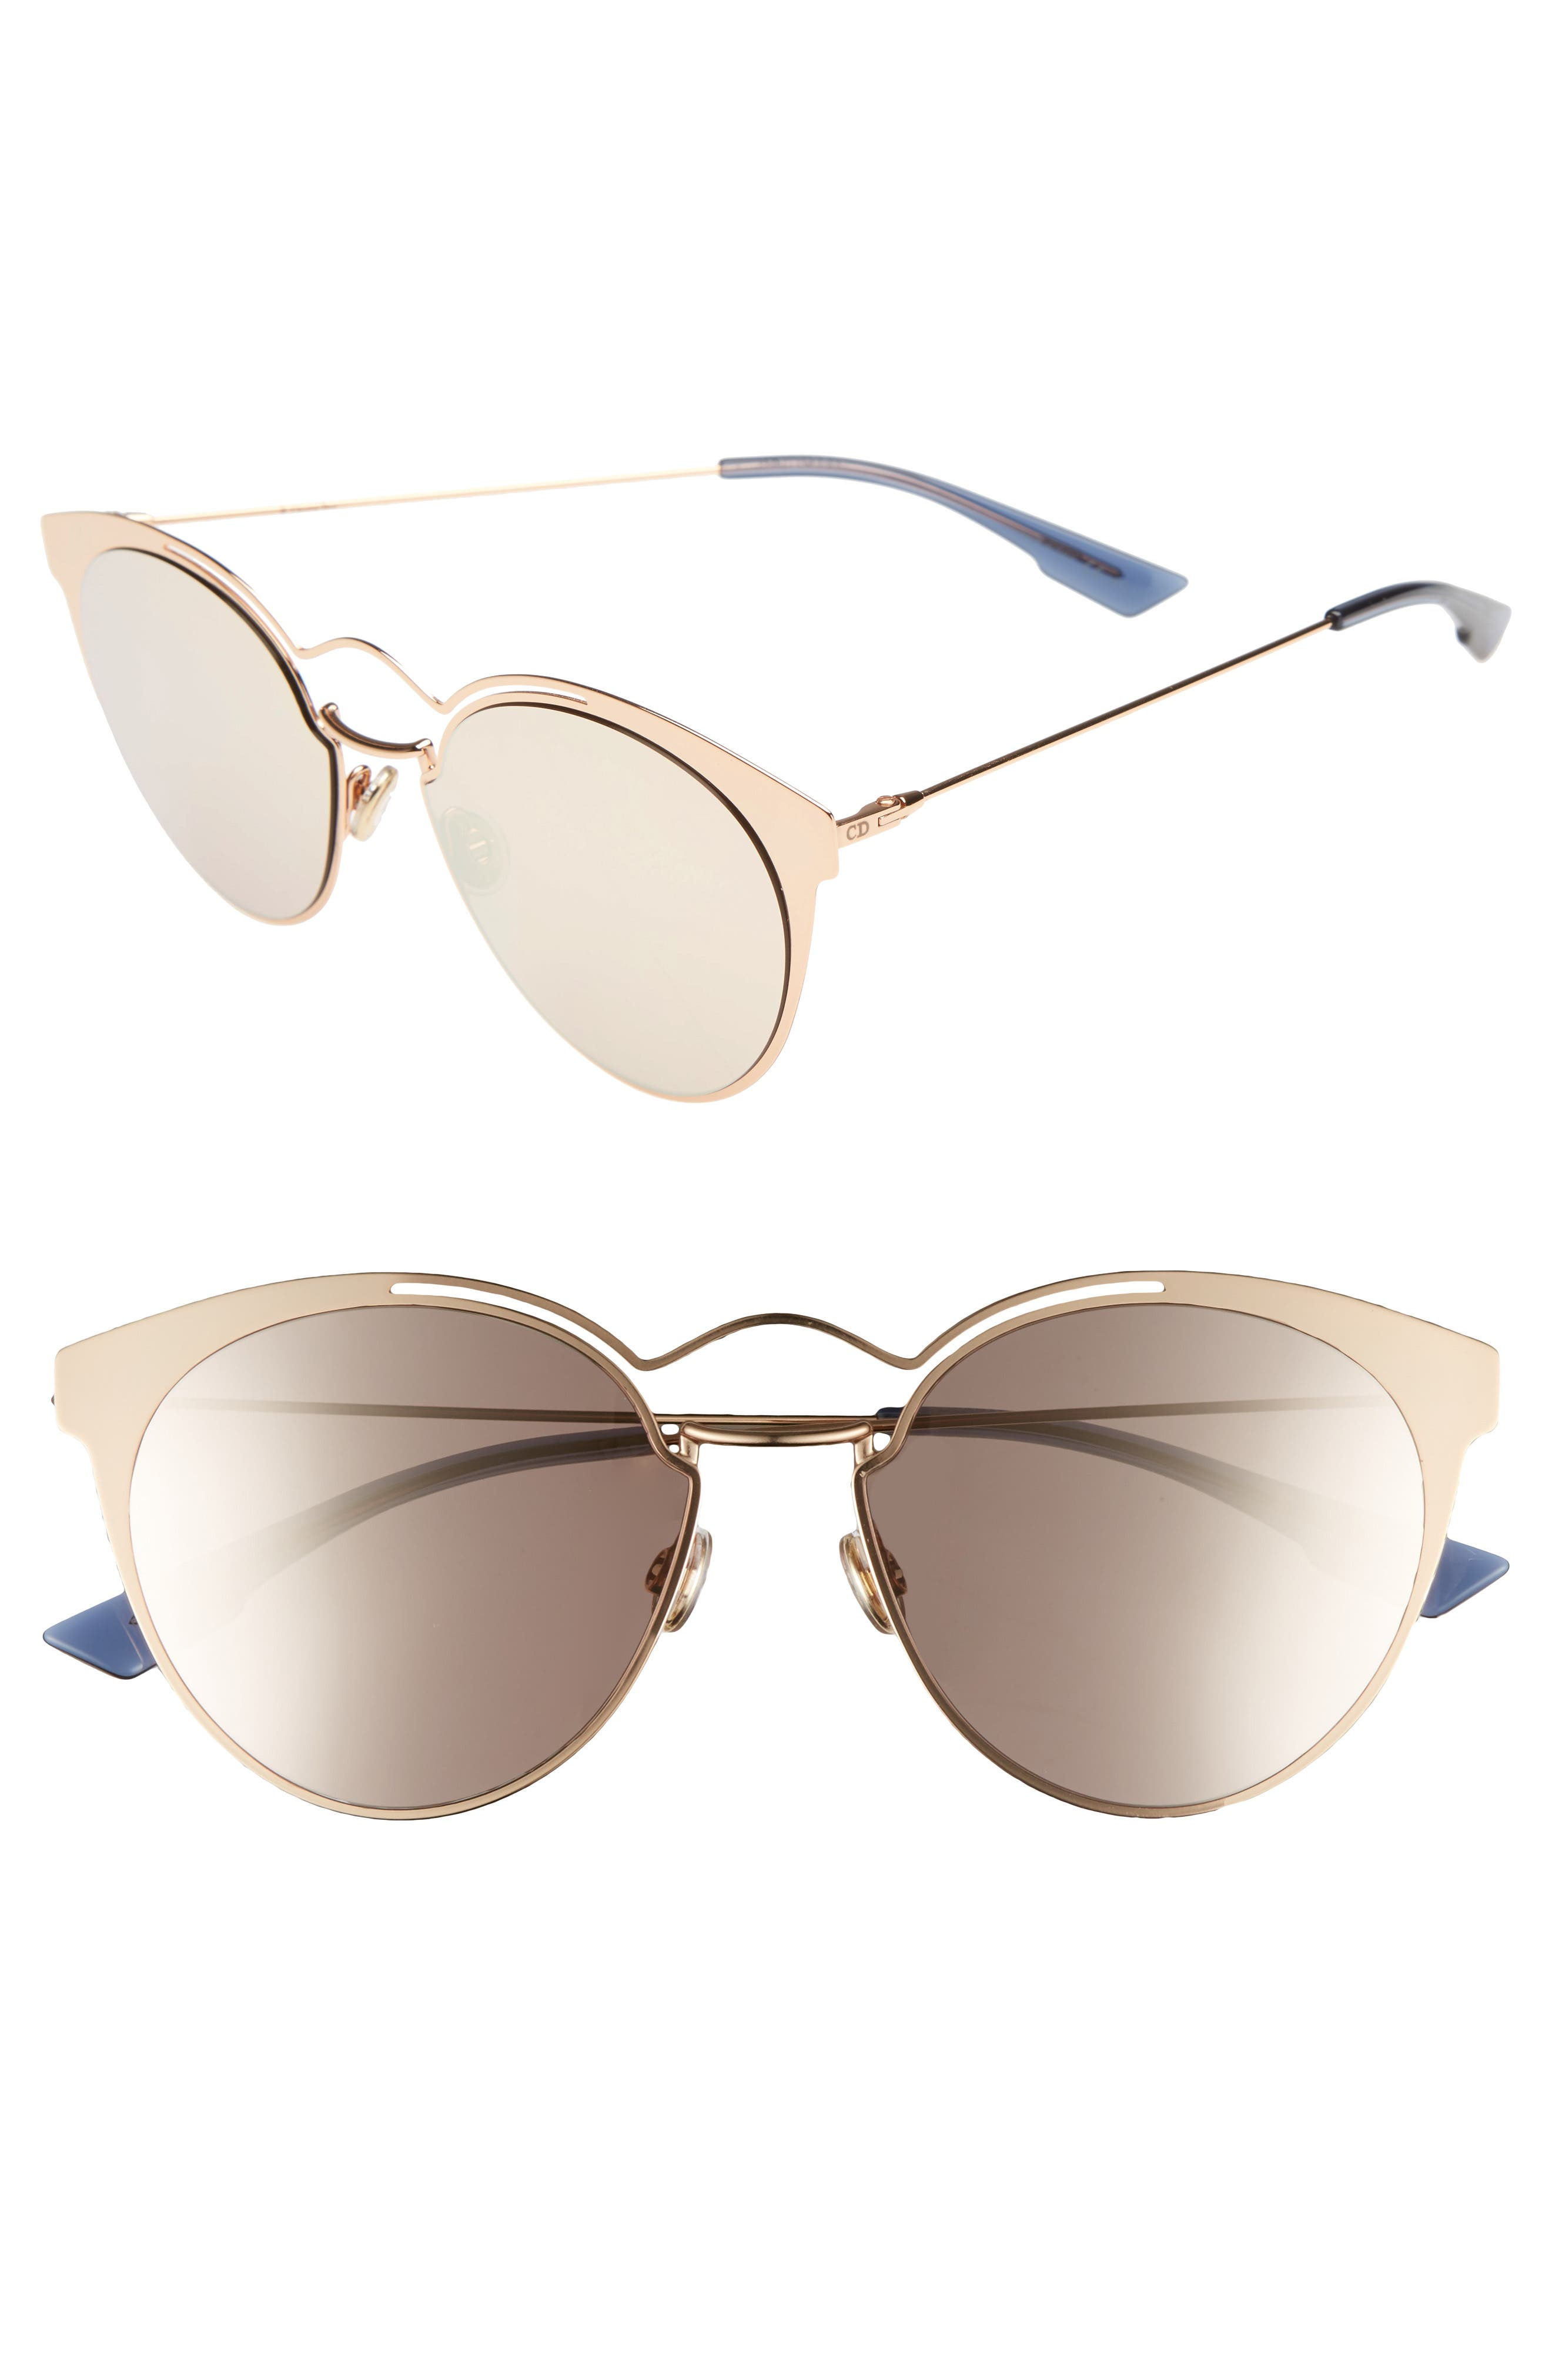 Nebuls 54mm Sunglasses,                             Main thumbnail 1, color,                             Gold Copper